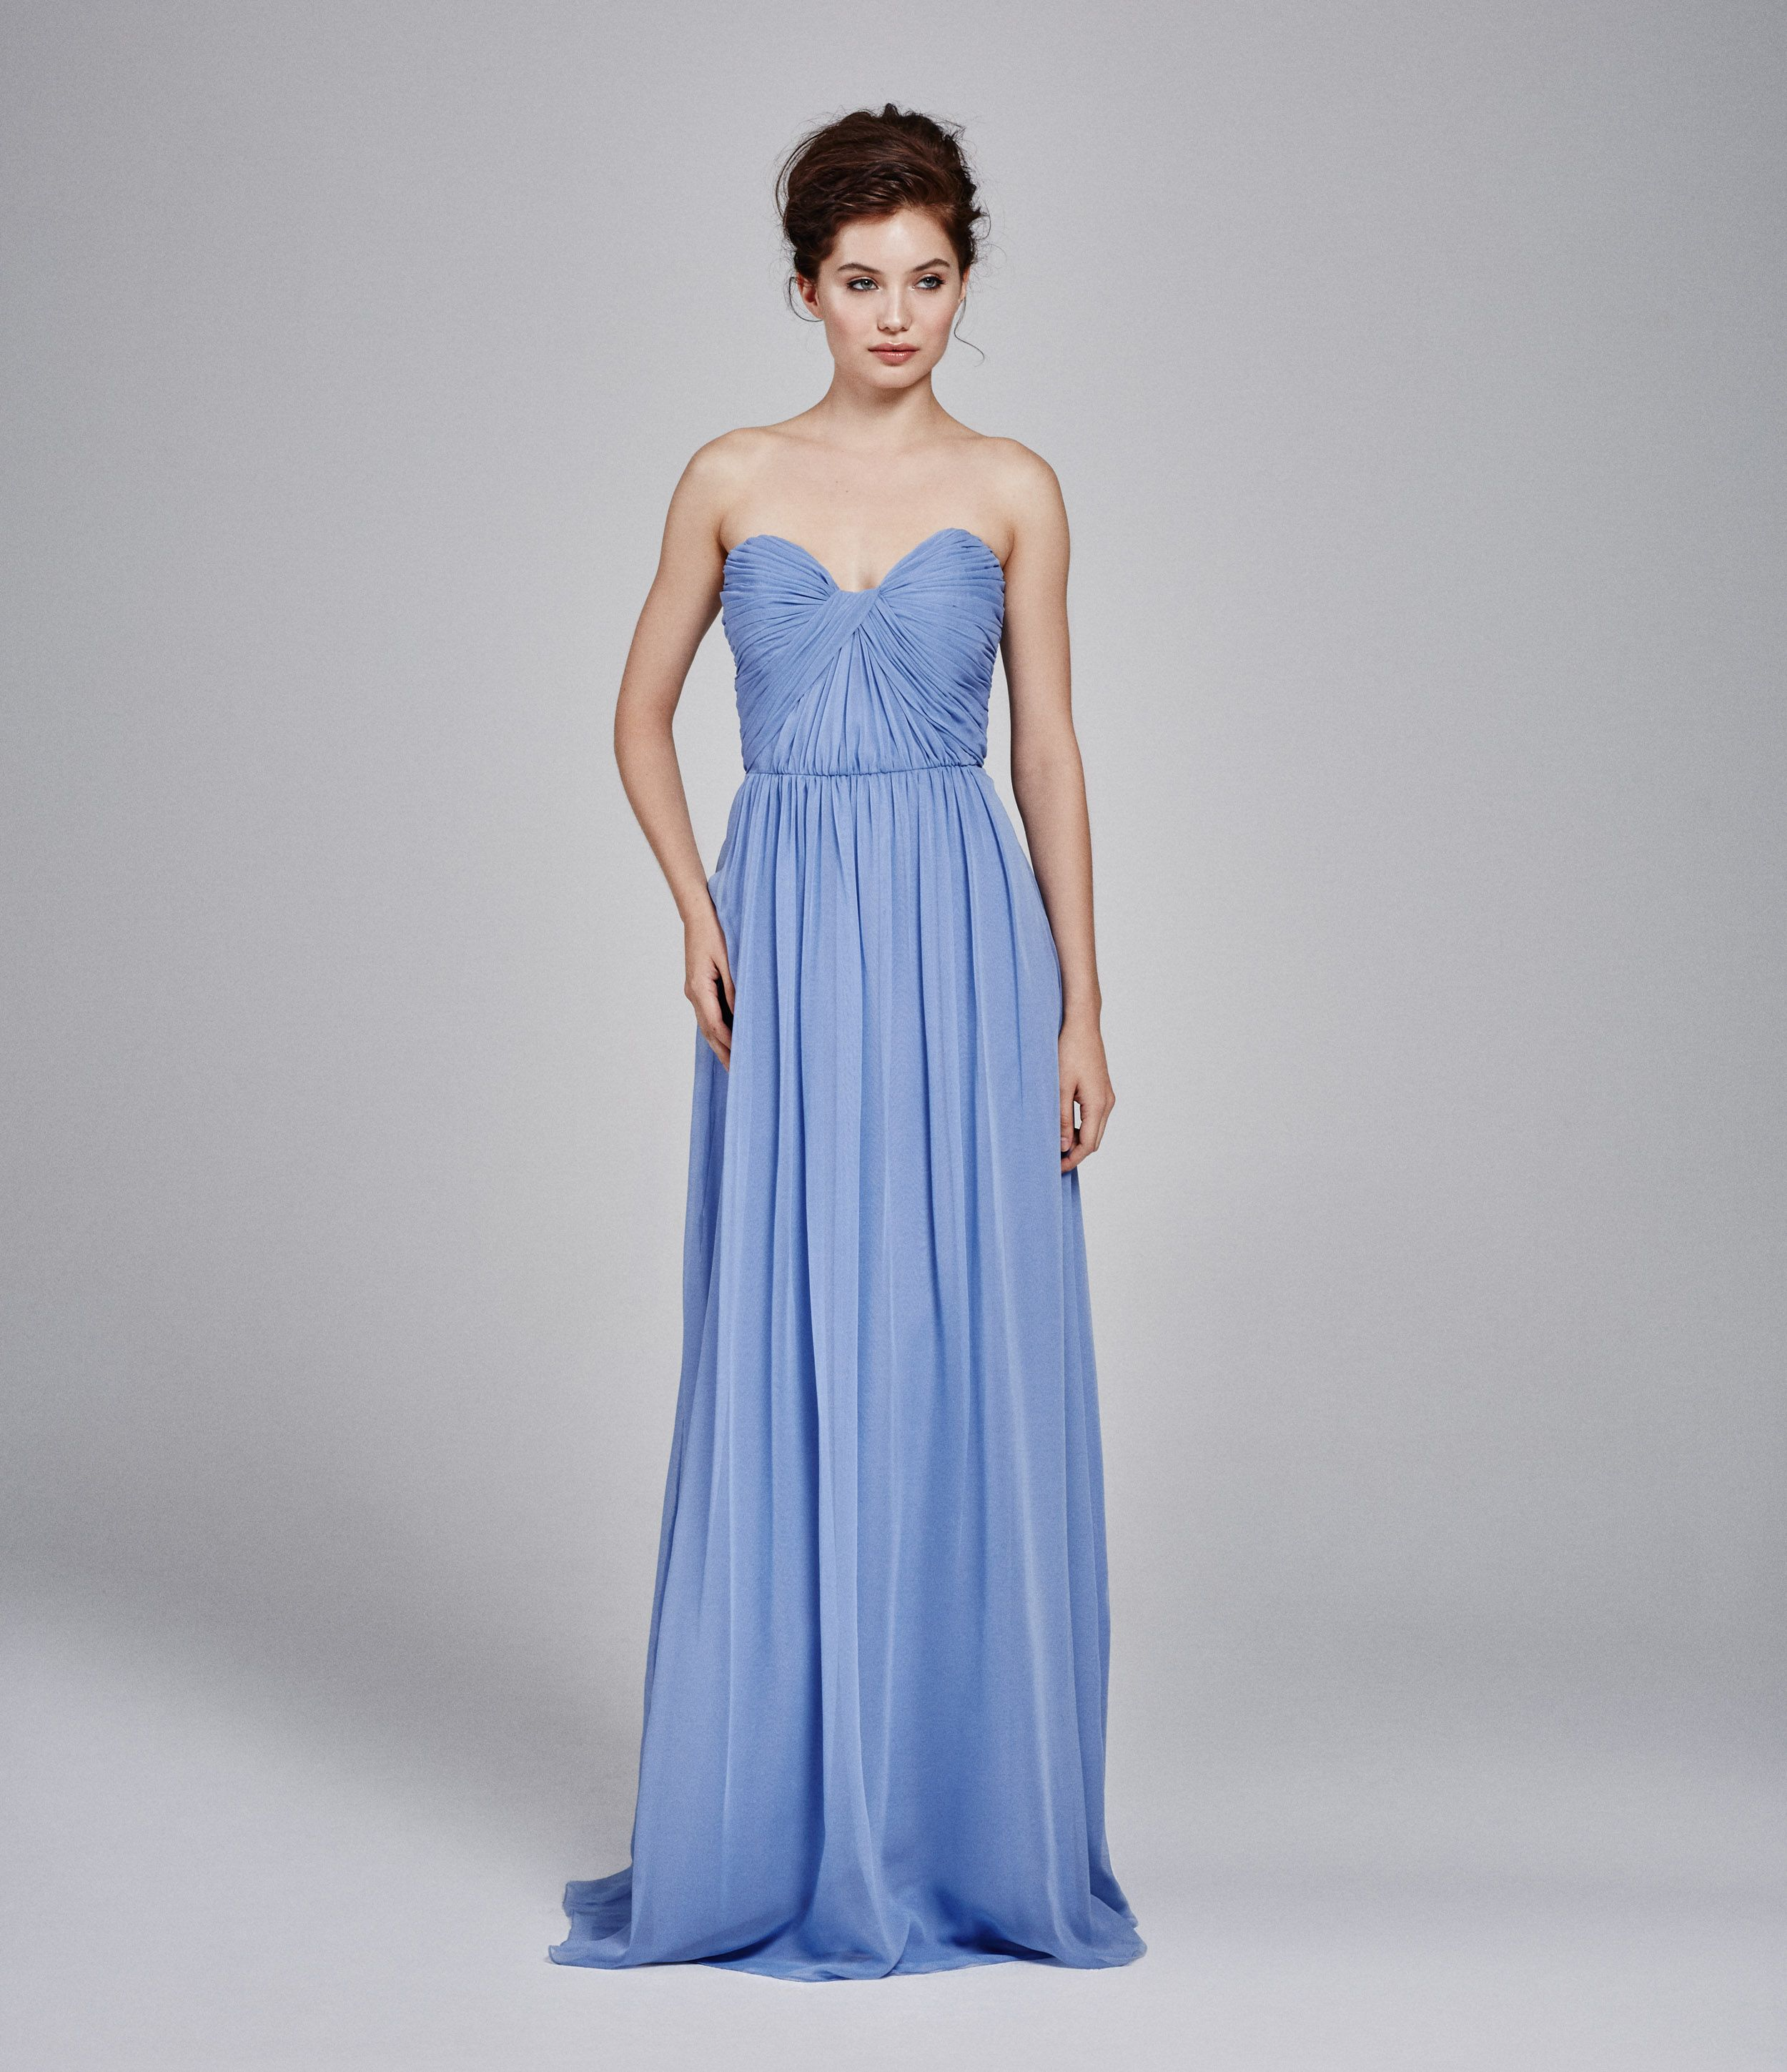 Kelly faetanini bridesmaids strapless blue chiffon gown with criss